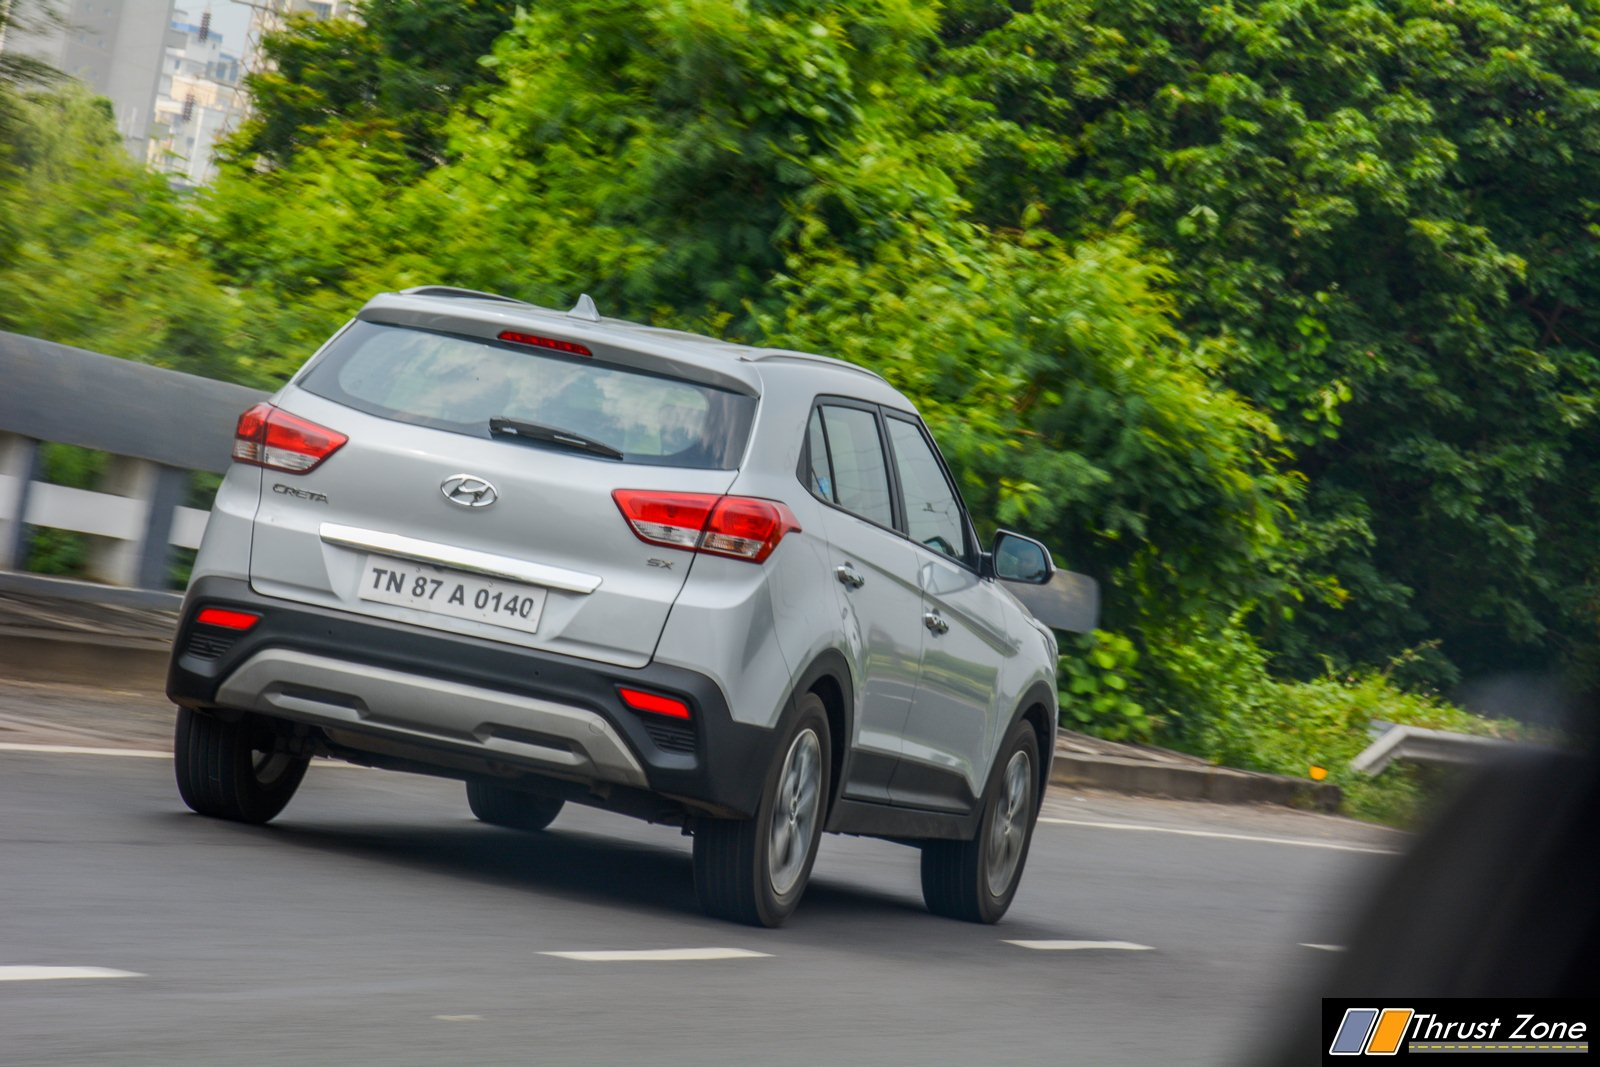 2019-hyundai-creta-facelift-diesel-review-3 - thrust zone